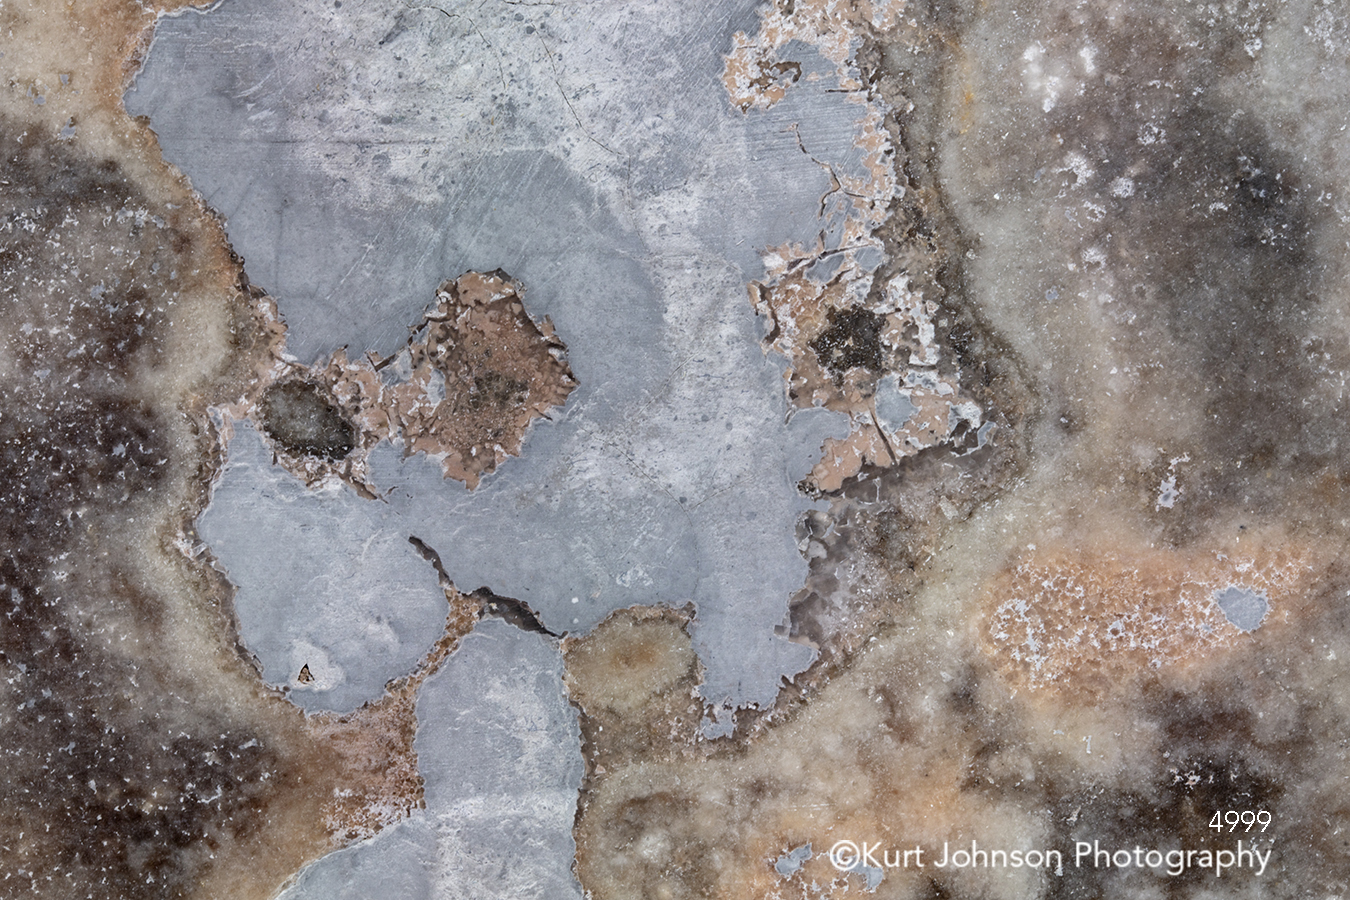 white brown crystal agate geode close up detail rock stone texture pattern textures